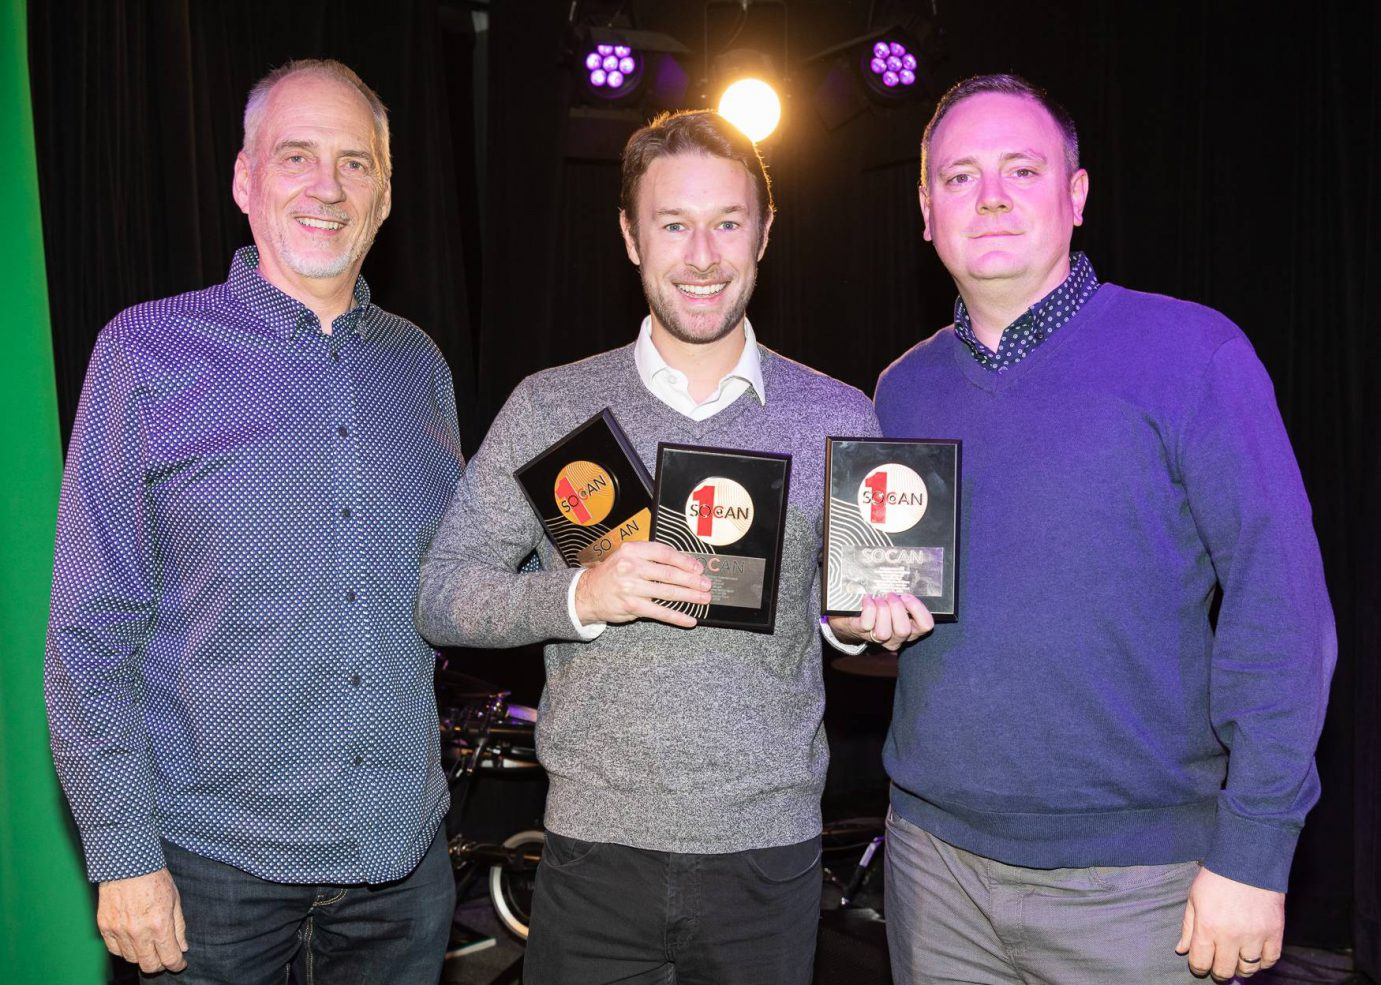 SOCAN, No. 1 Songs, awards, publishers, Adam Nathanson, Anthem Entertainment